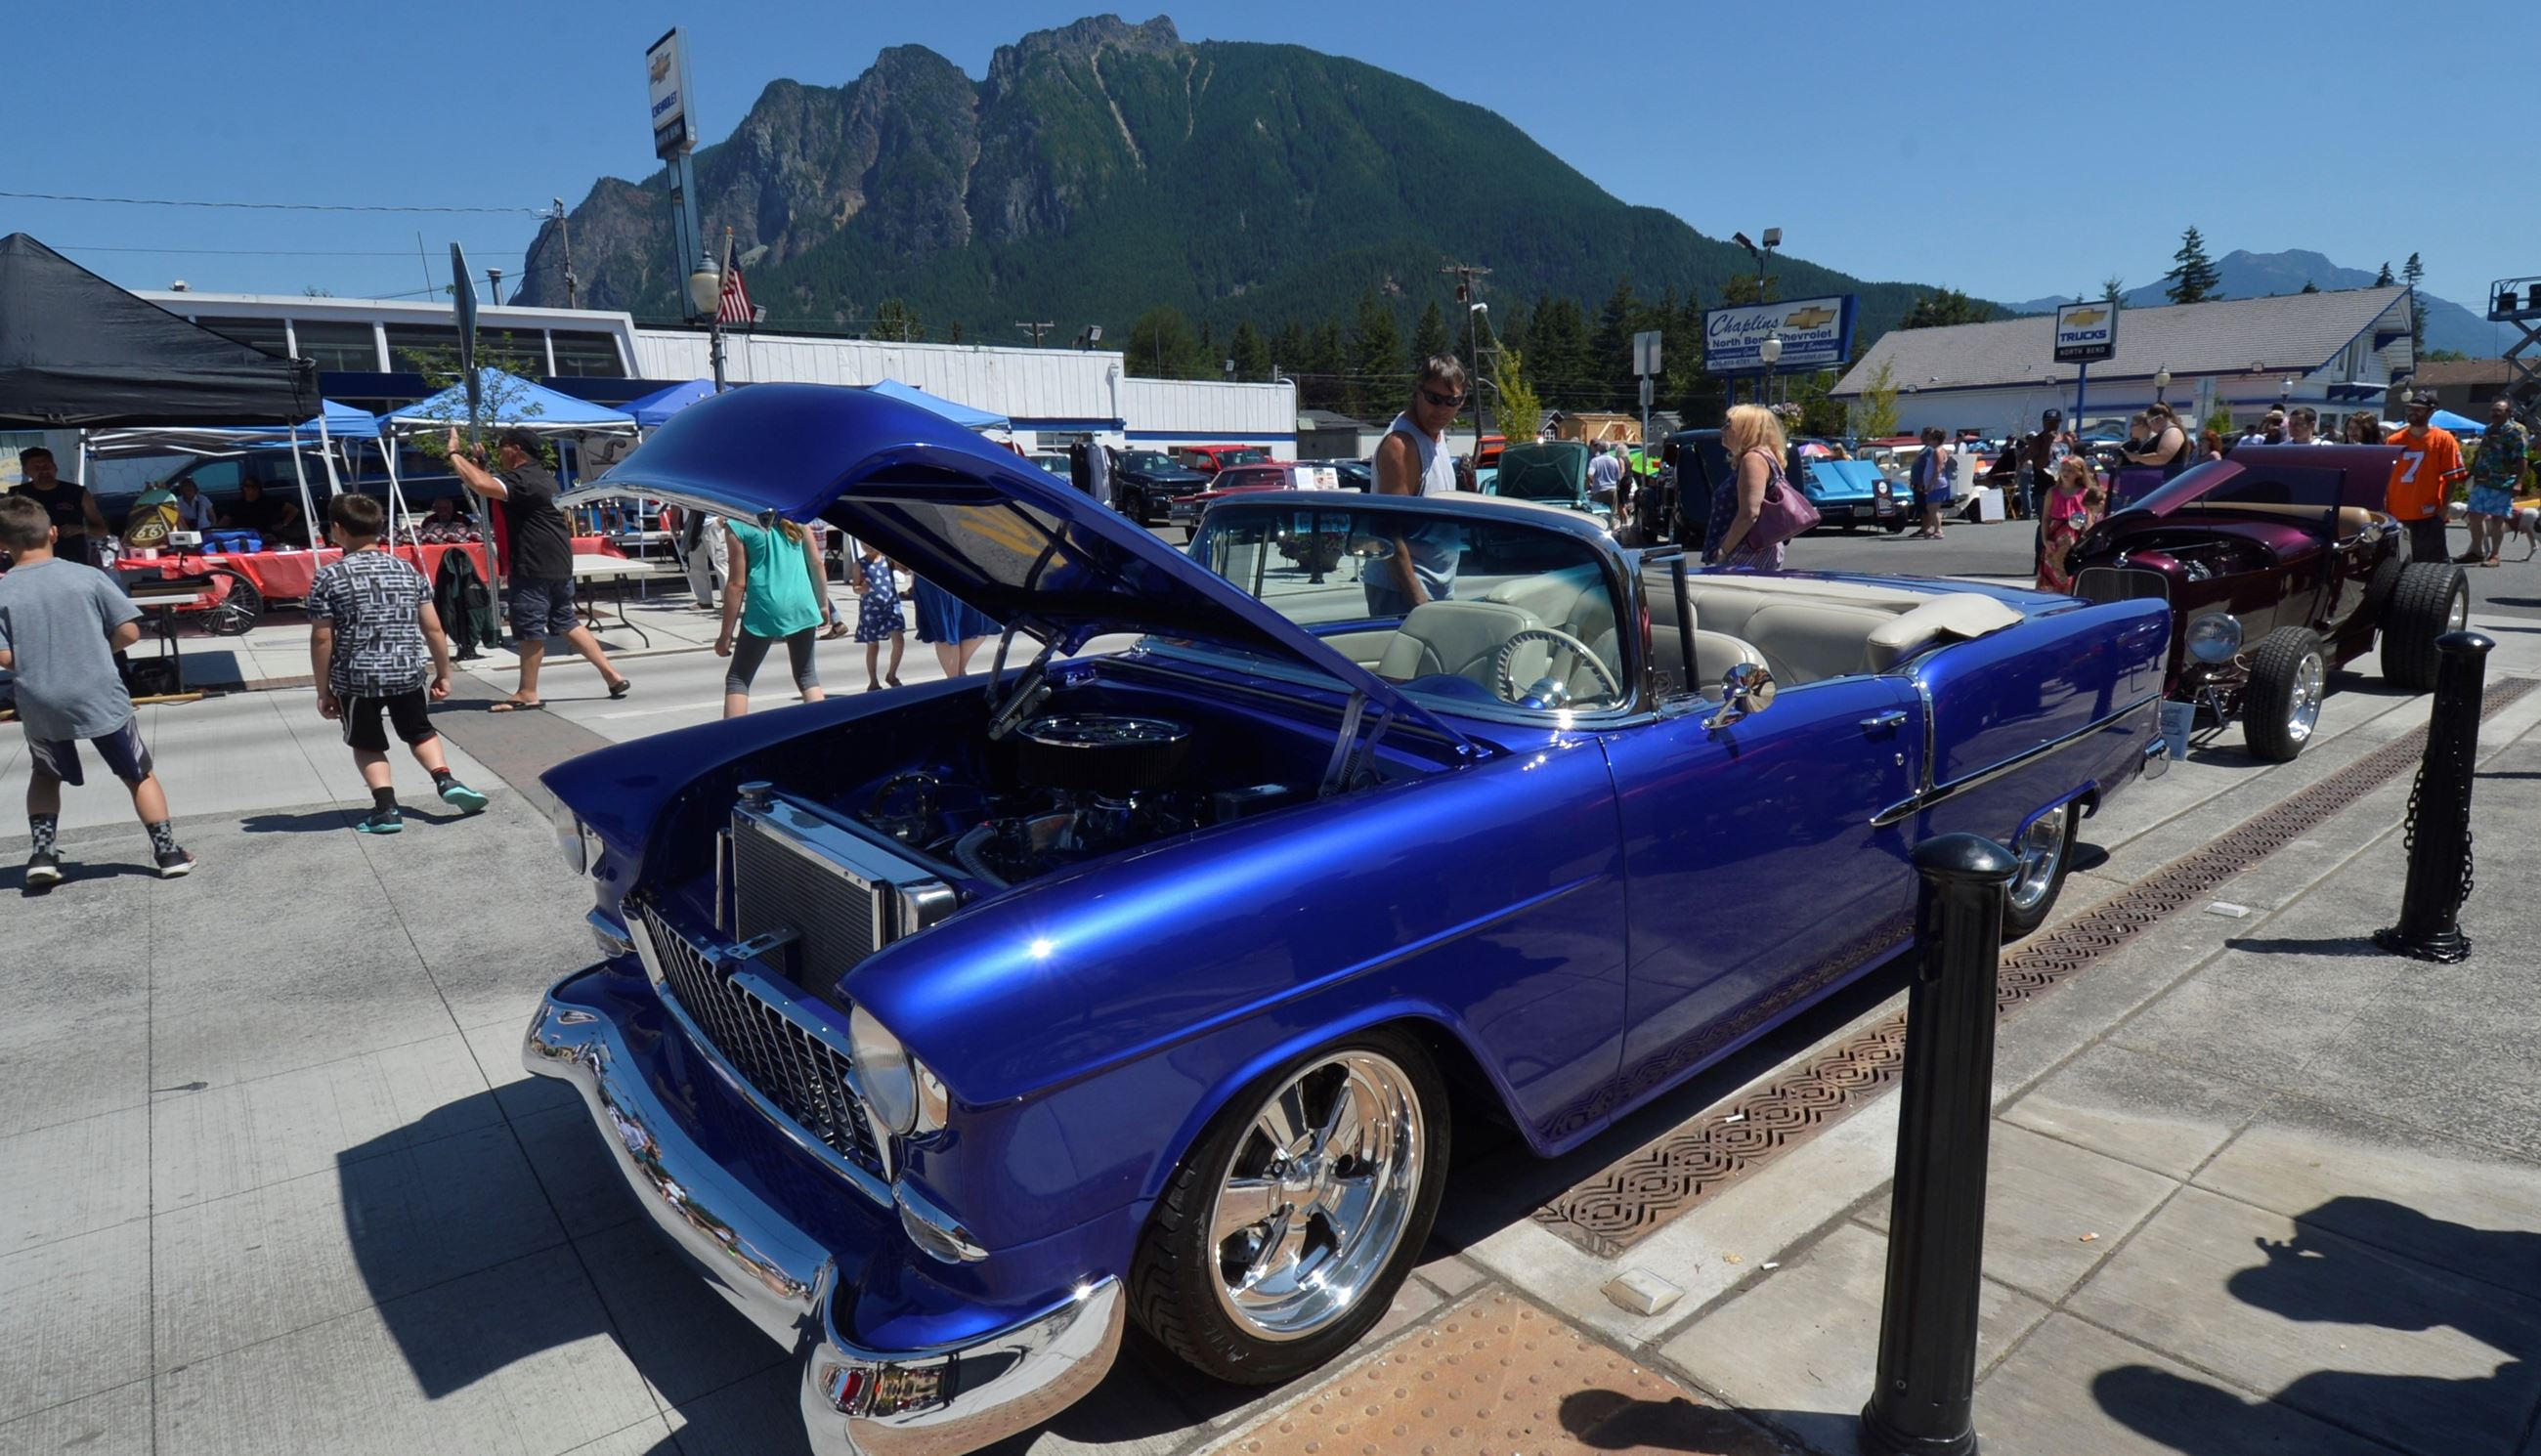 Legends Car Show, Photo courtesy of Mary Miller